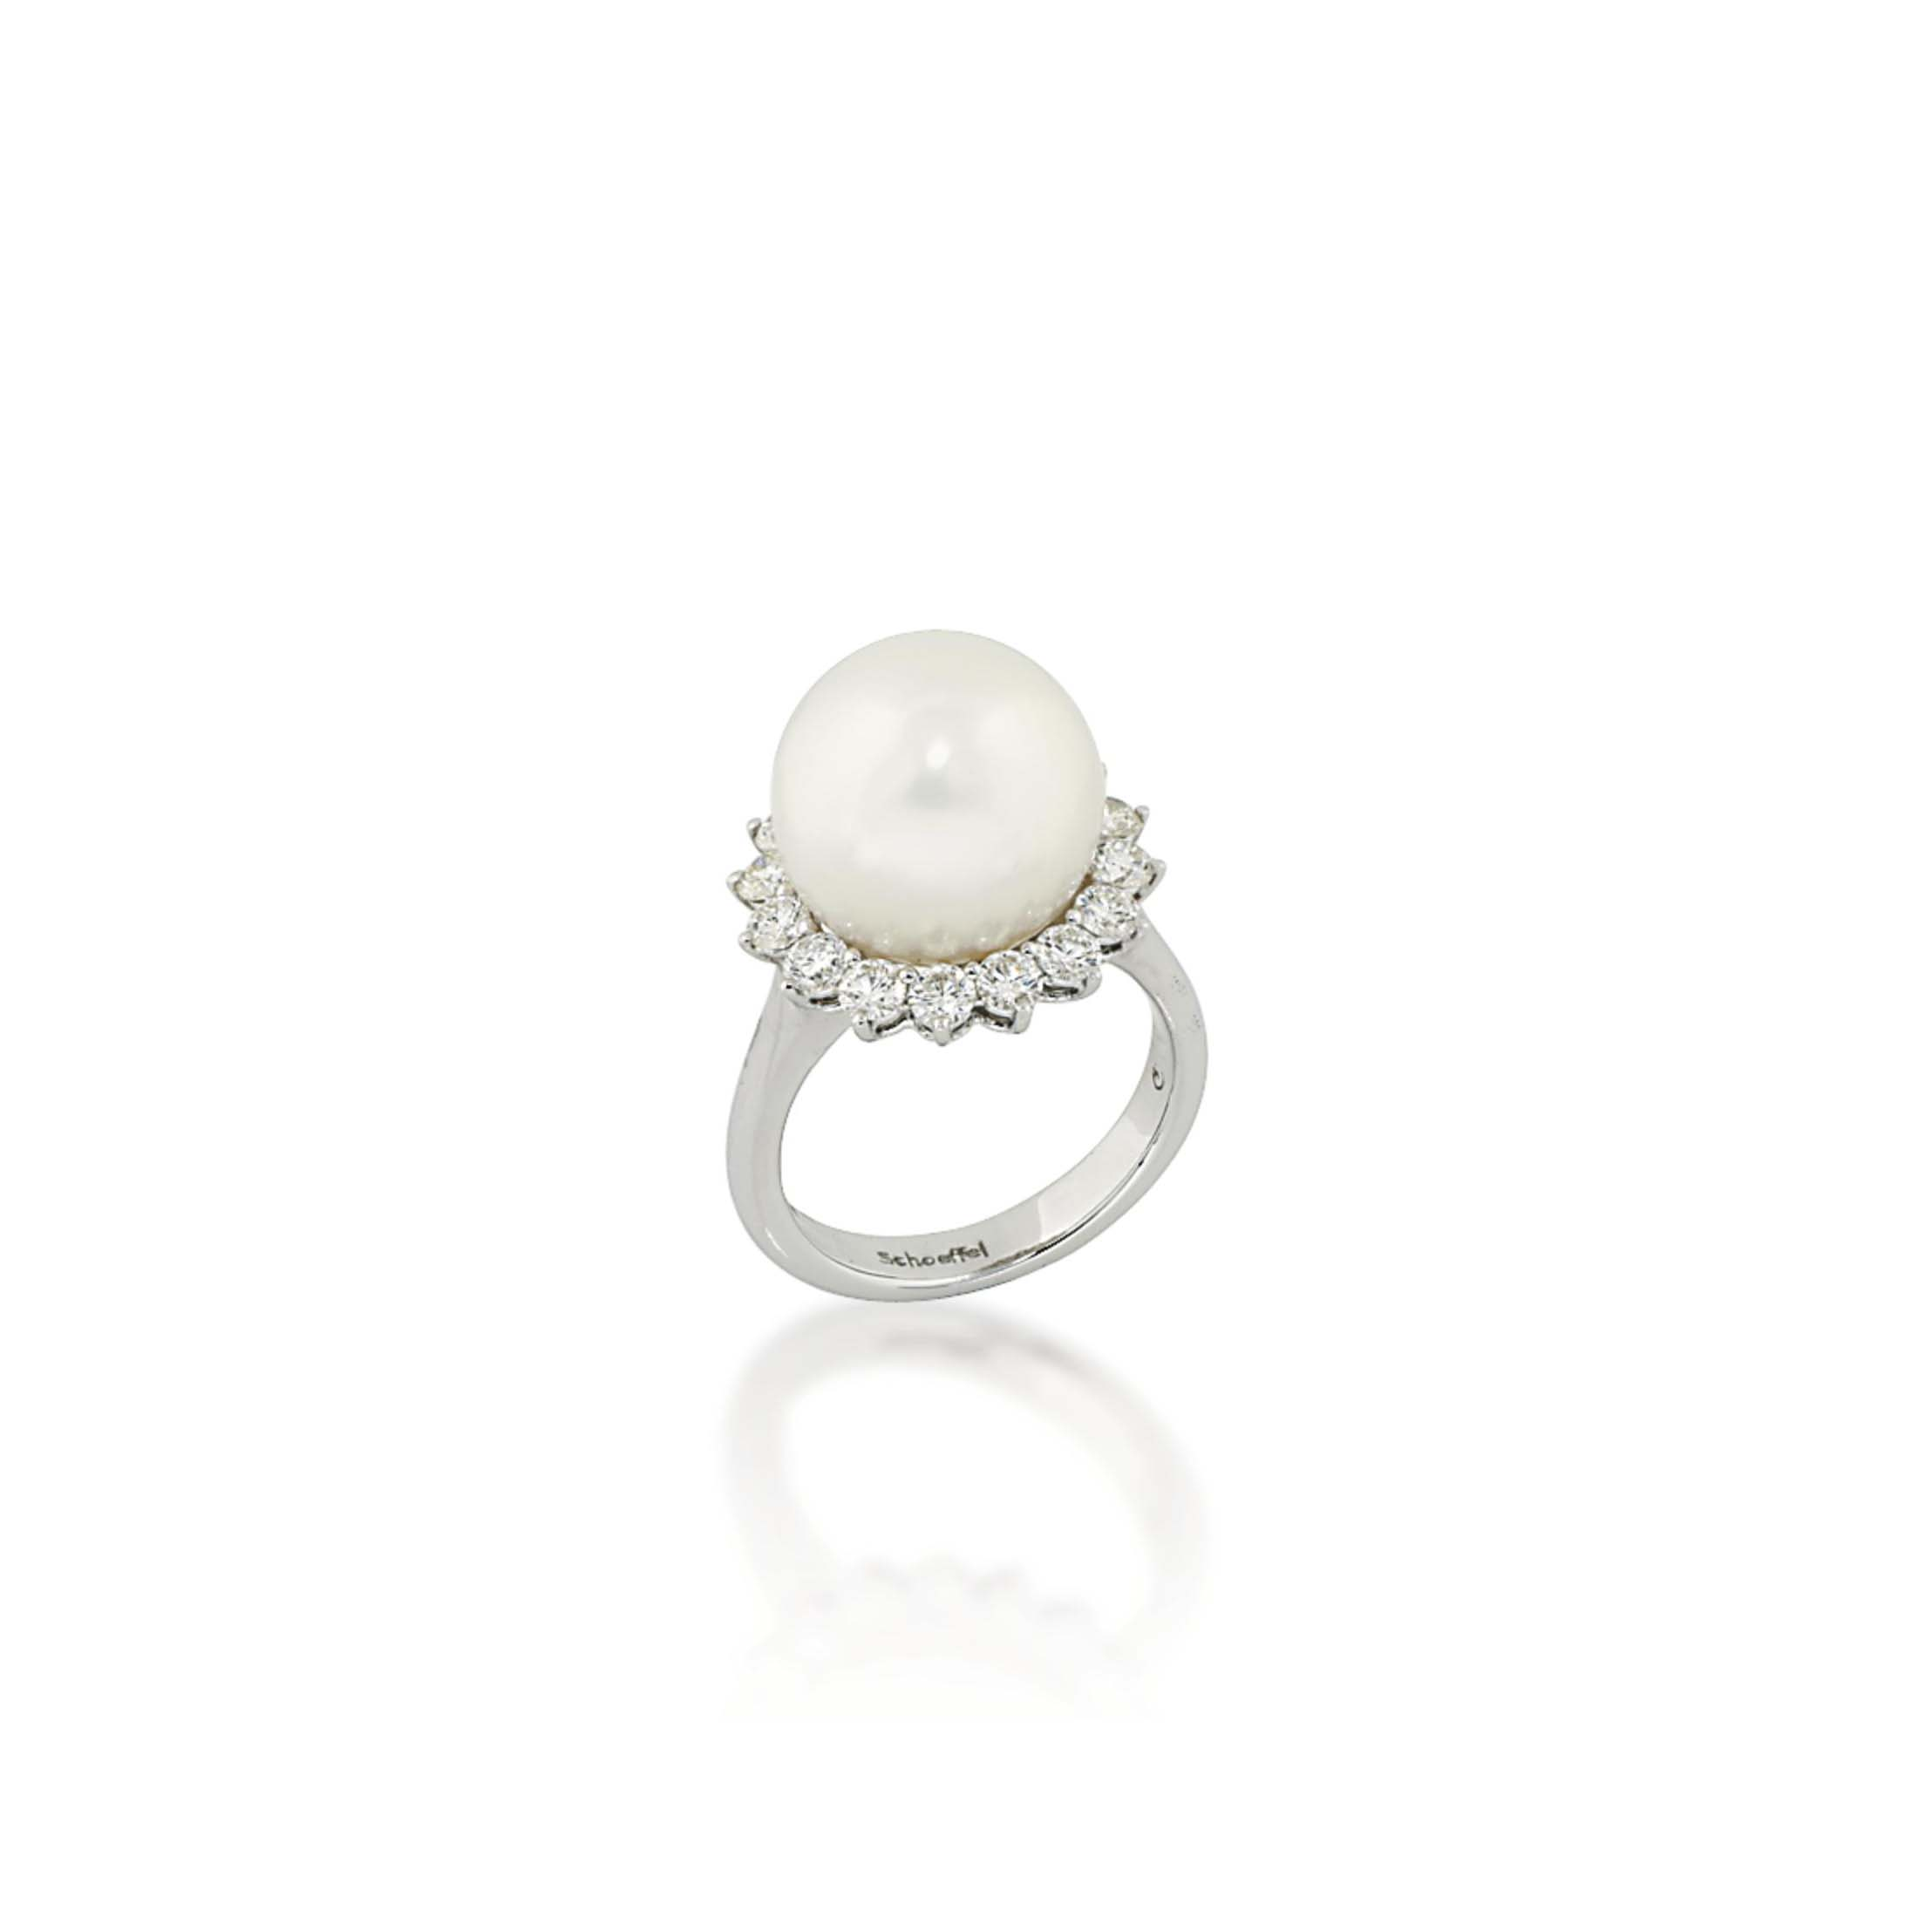 A CULTURED PEARL AND DIAMOND RING, BY SCHOEFFEL